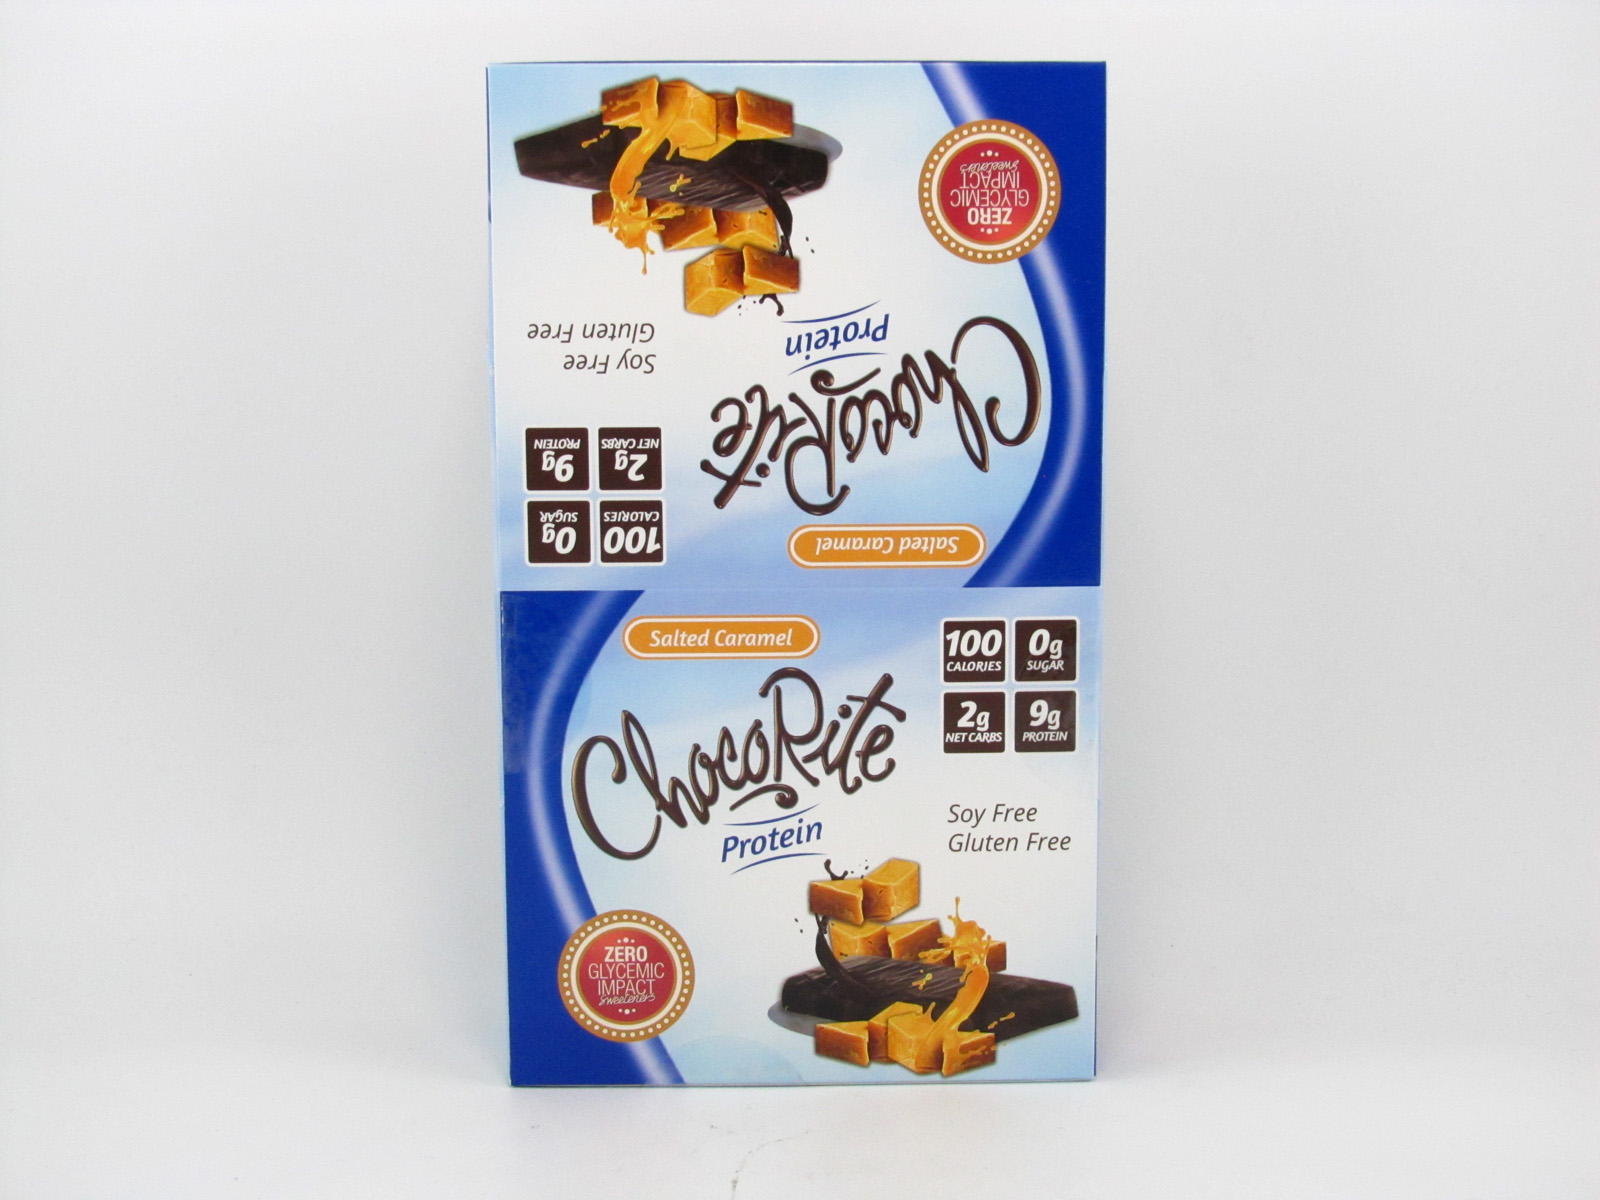 Chocorite Protein Bar ( 34g) - Salted Caramel Box of 16 - front view